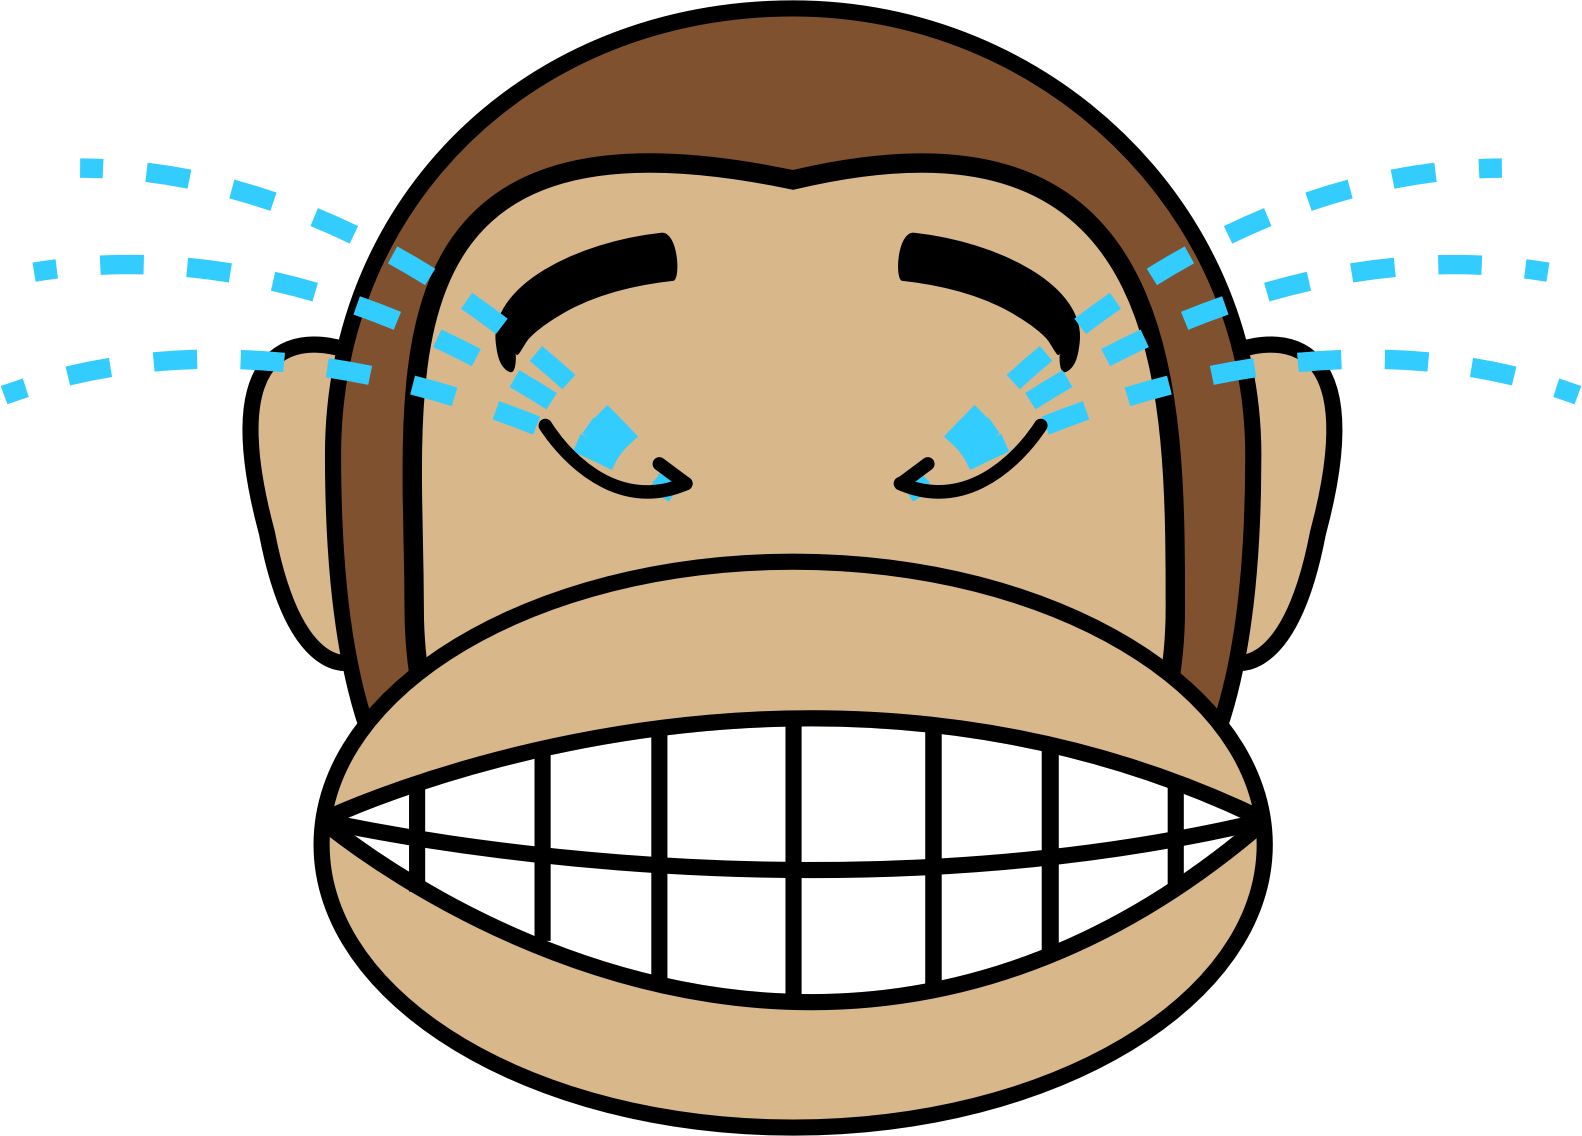 Laughing clipart image royalty free library Clipart - Monkey Emoji - Laughing out loud image royalty free library